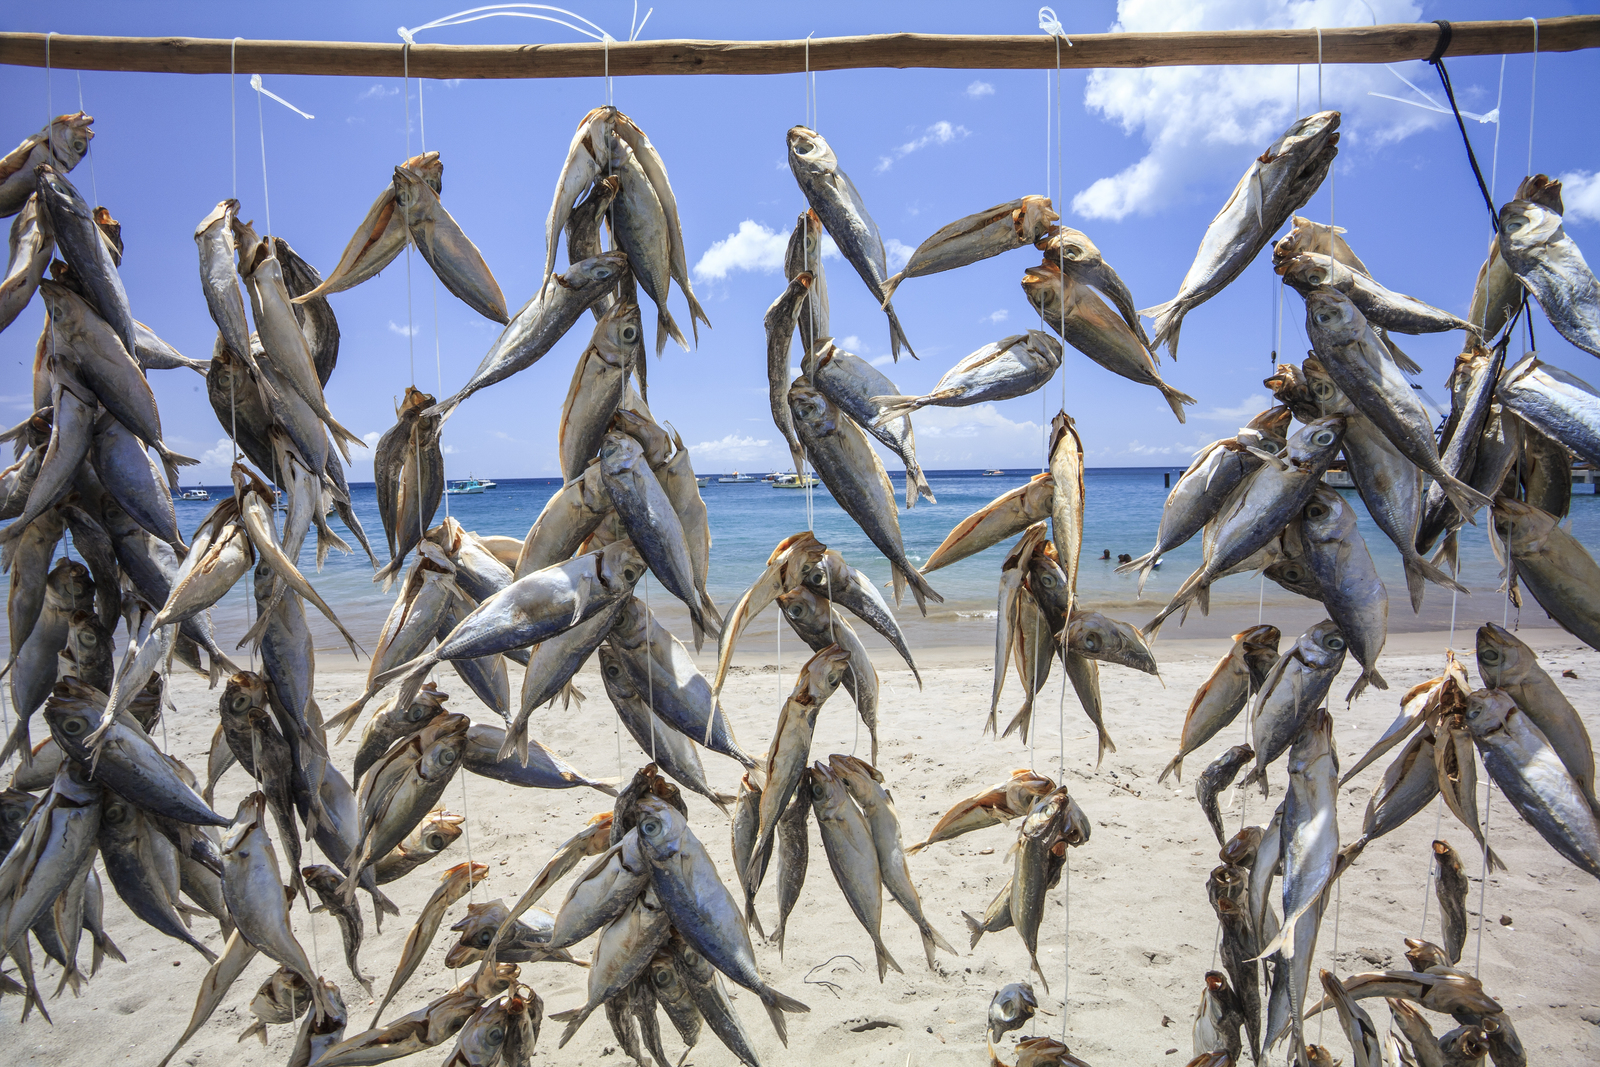 Saltfish drying on the beach at Gouave, one of the fishing communities on Grenada. Photo © Marjo Aho